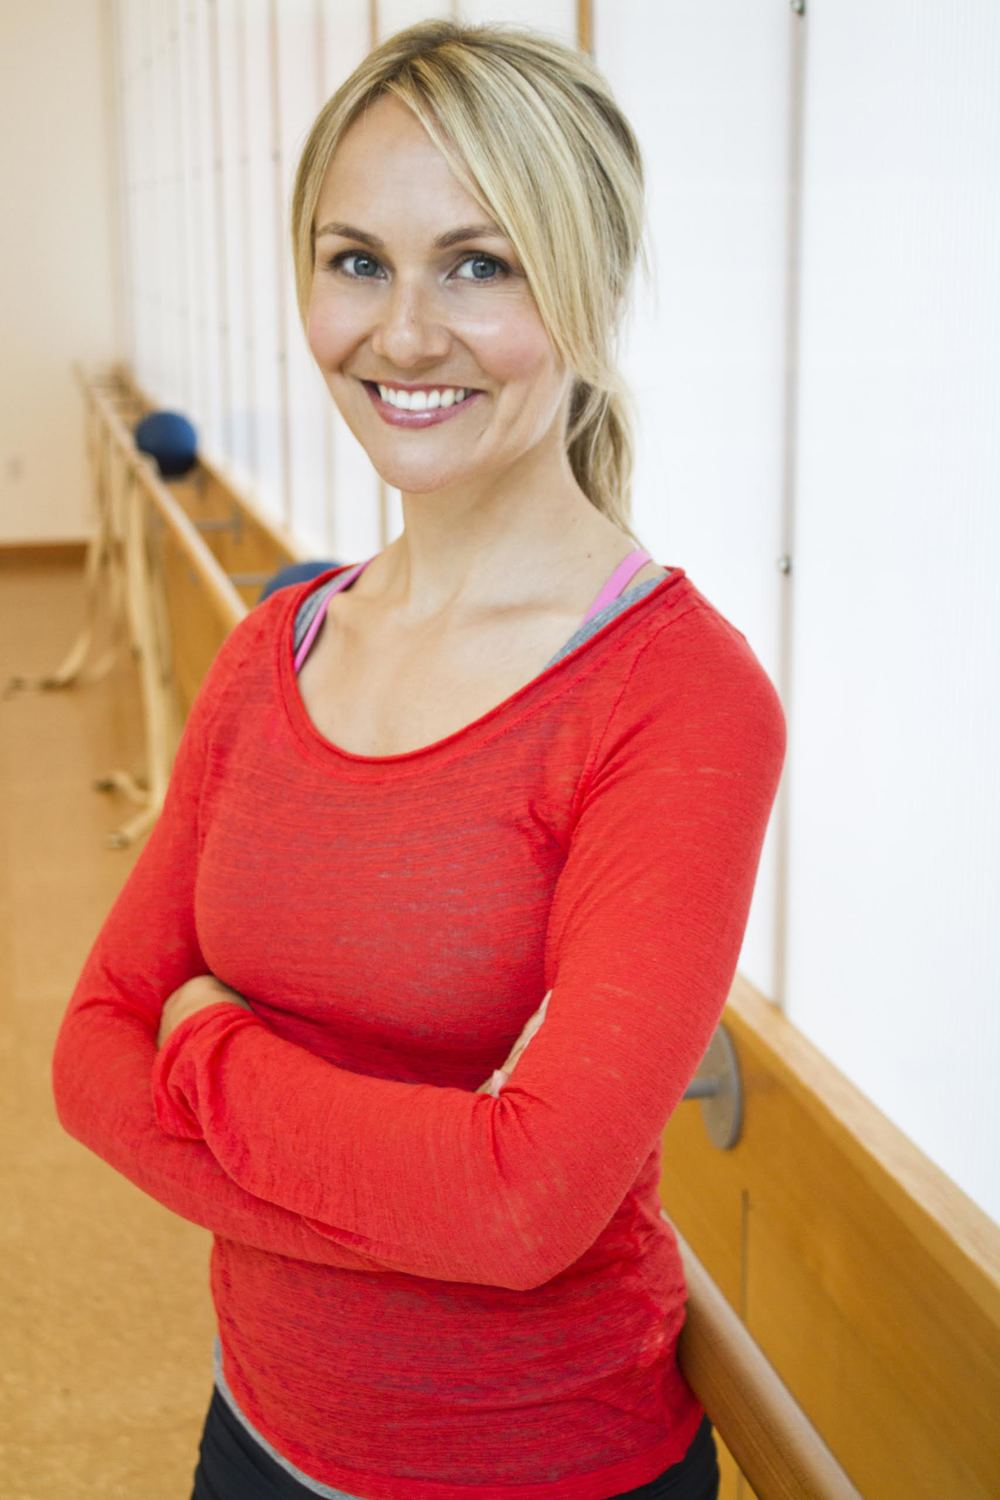 Sadie Lincoln, founder of barre3